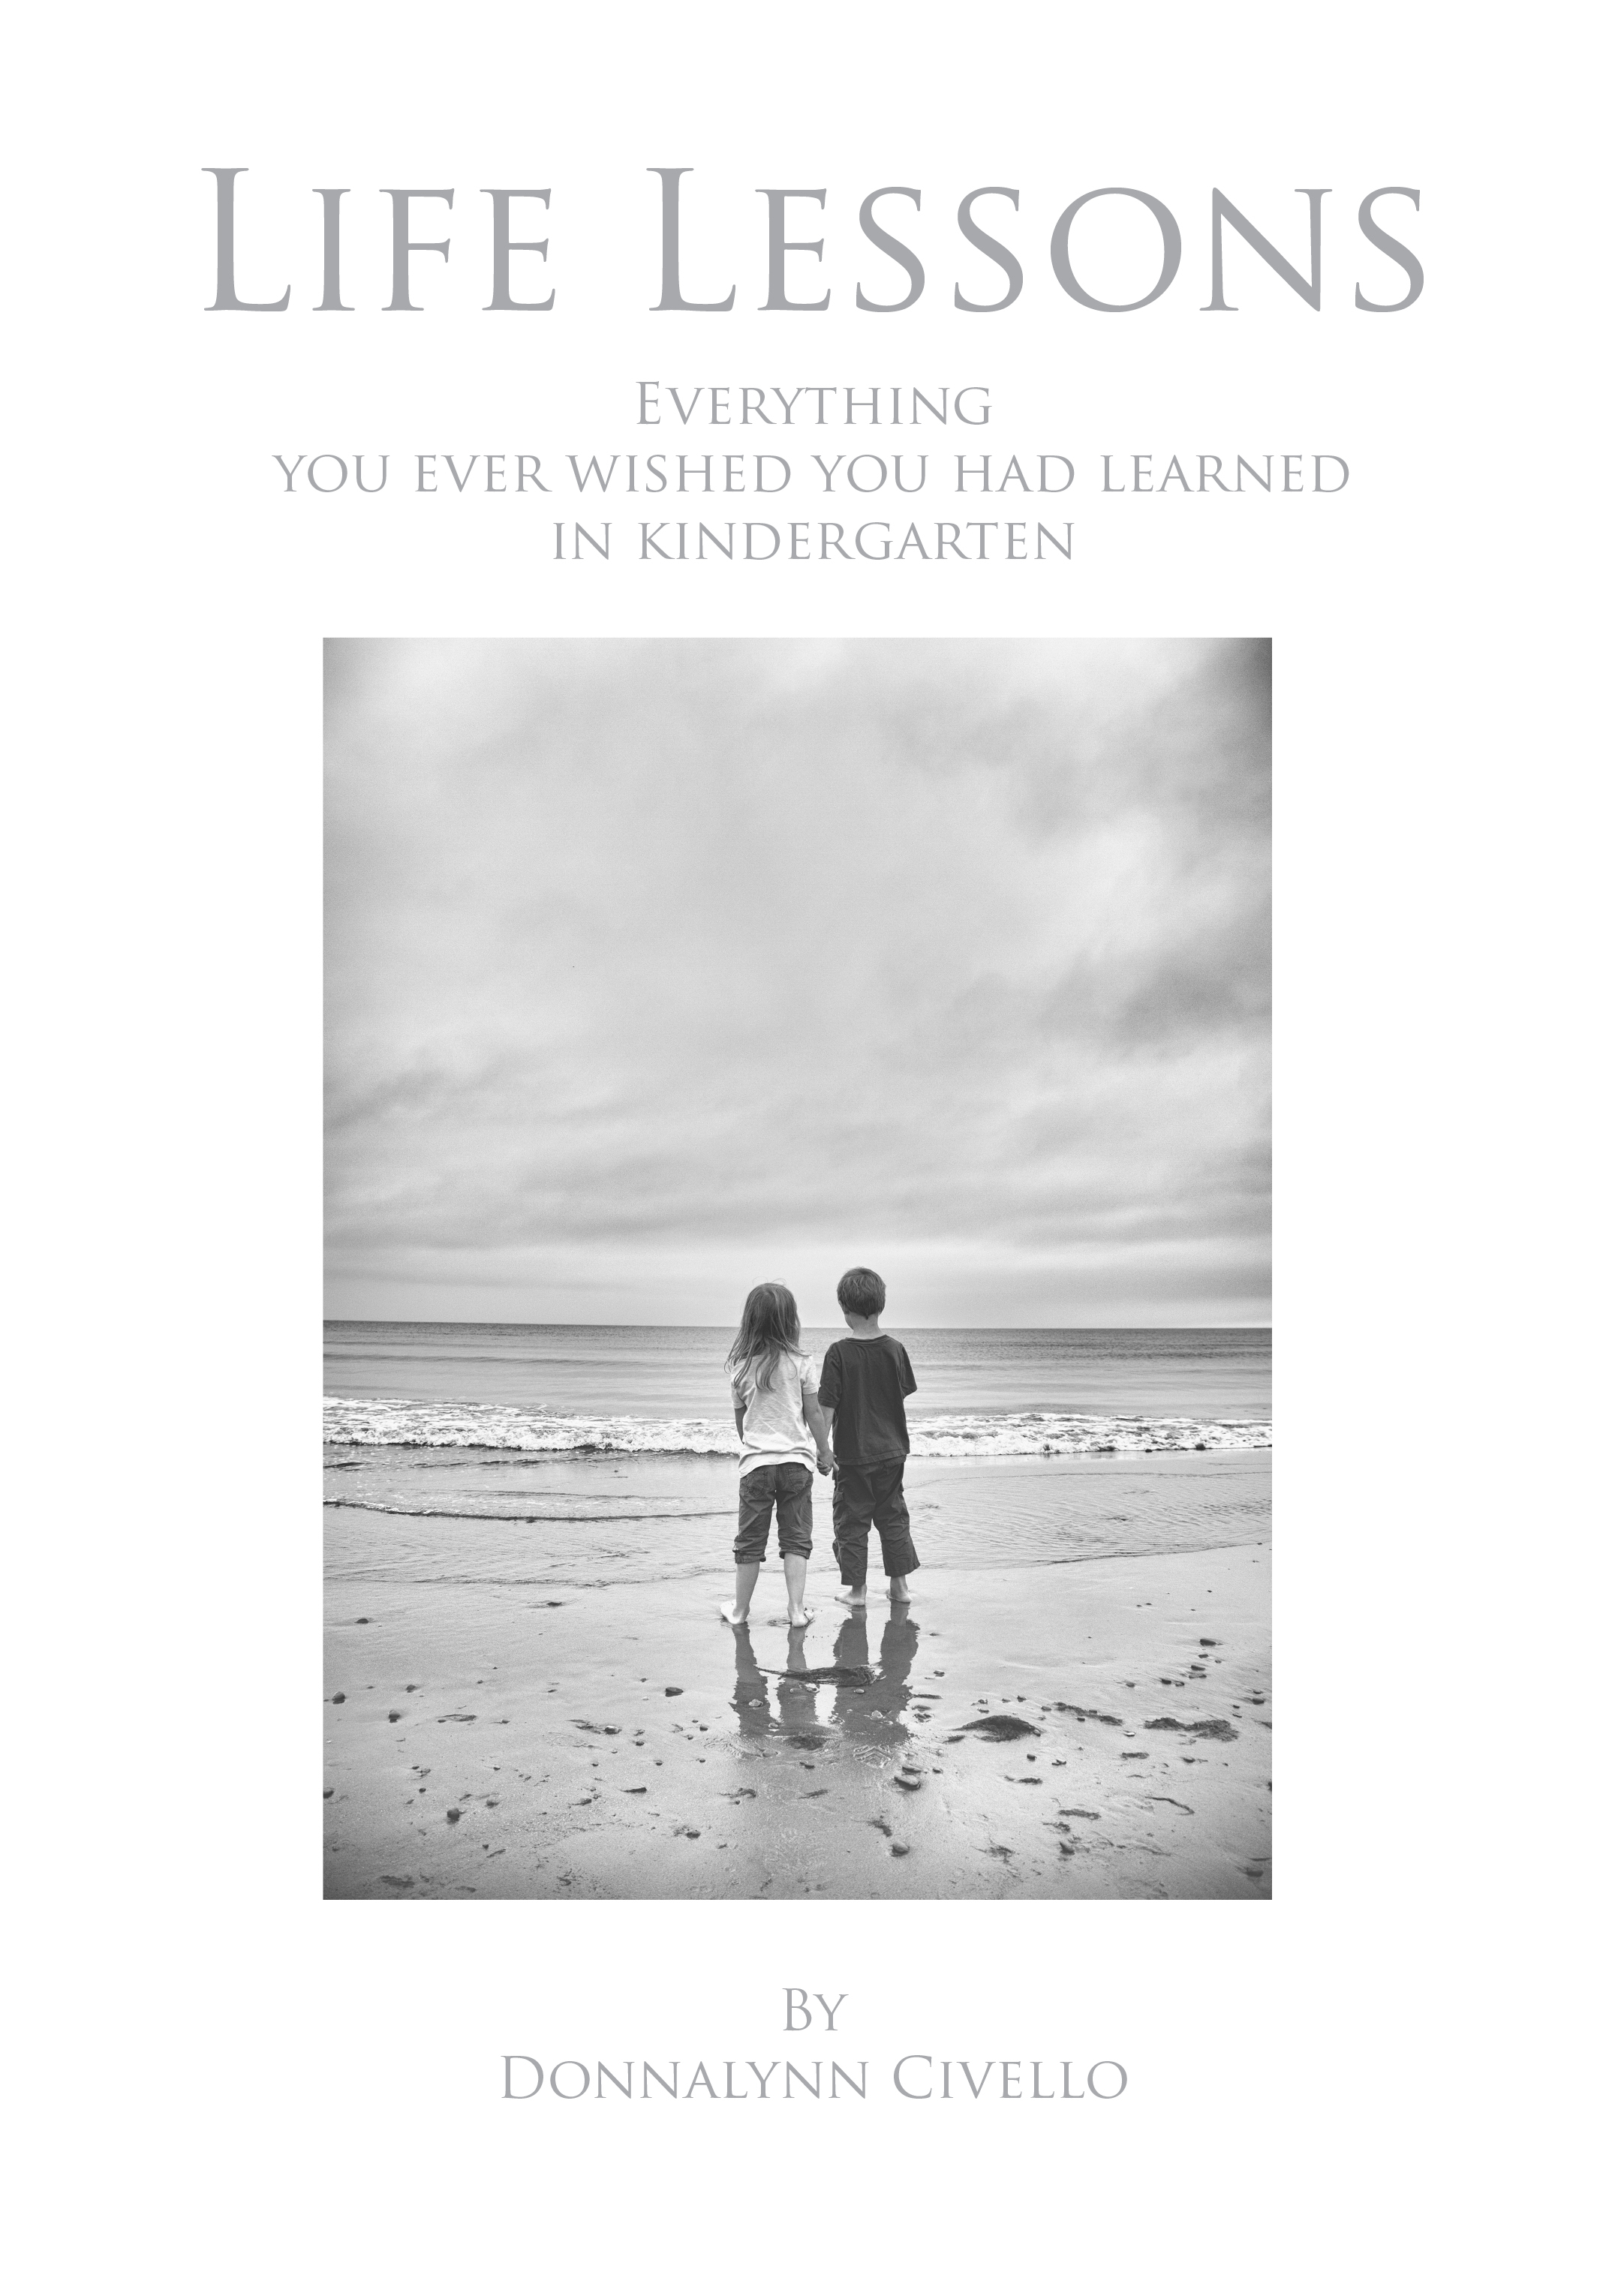 Life Lessons: Everything You Ever Wished You Had Learned in Kindergarten